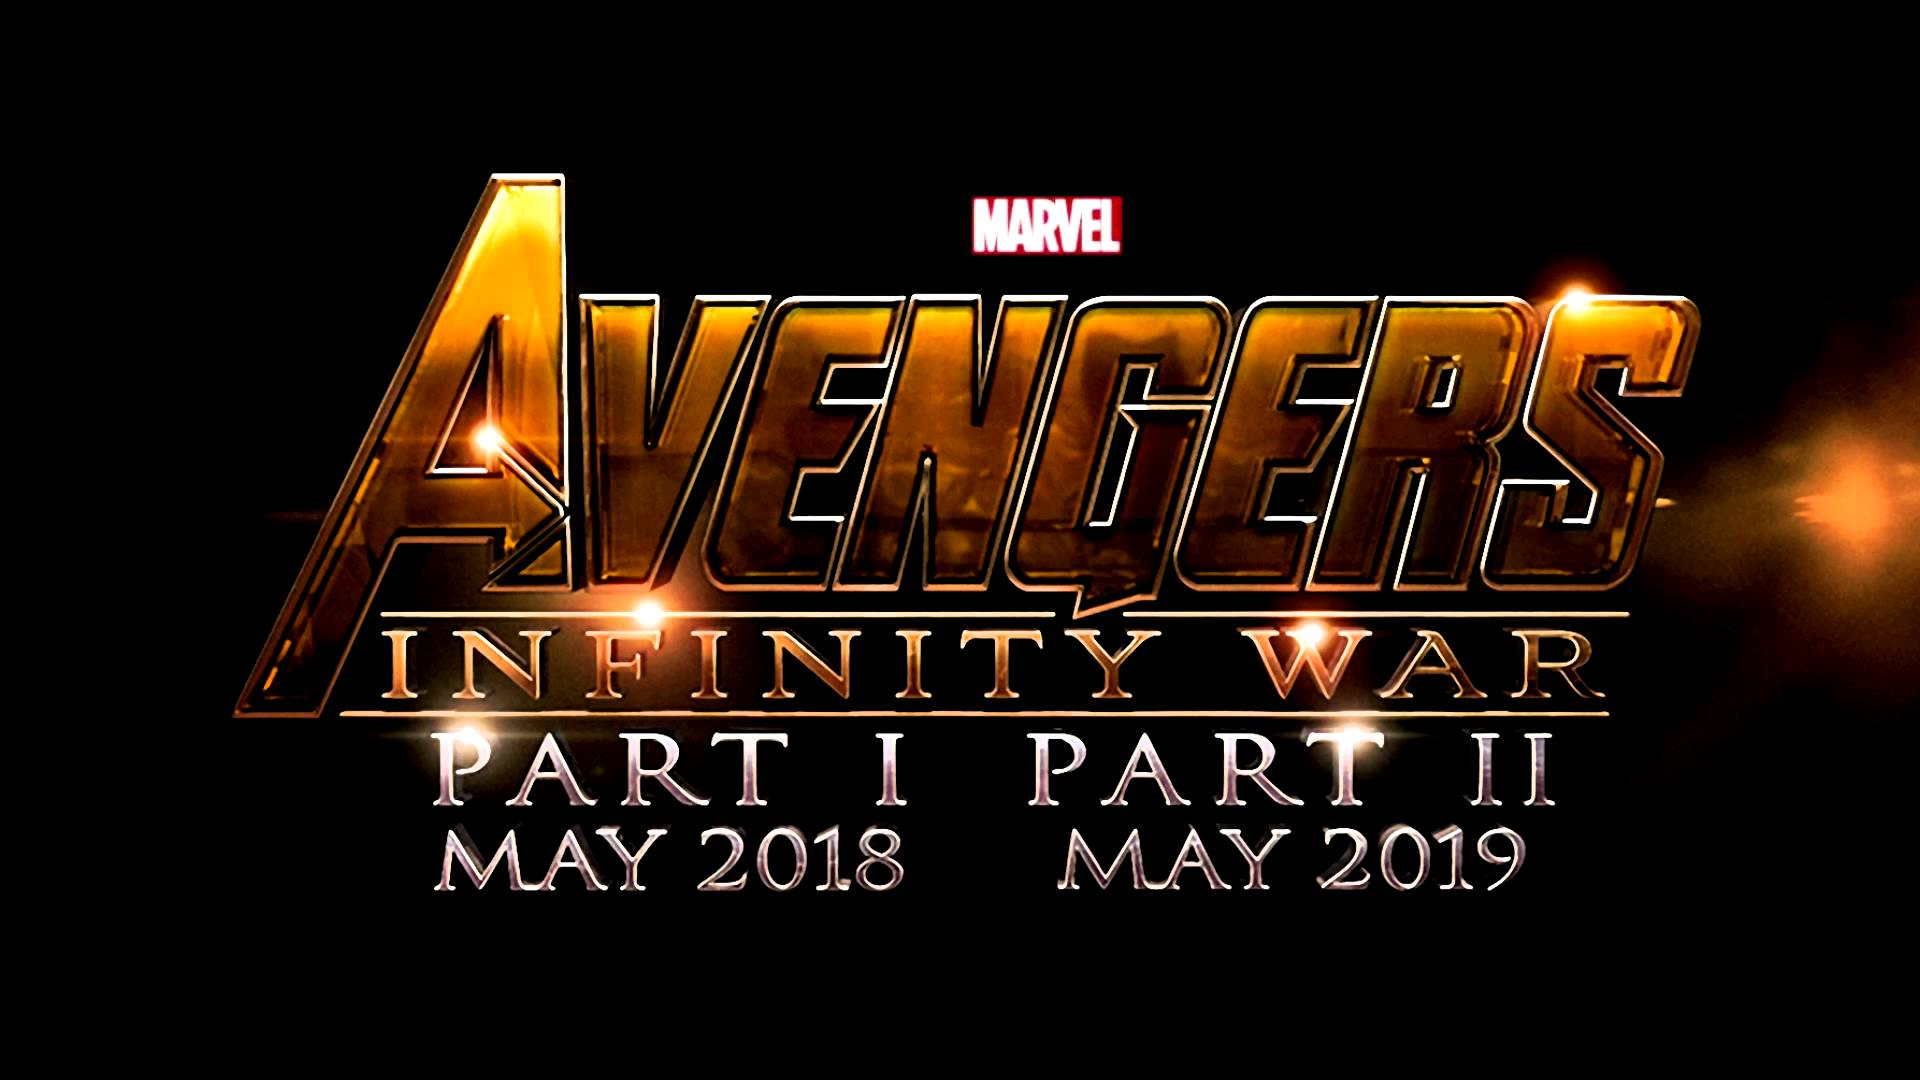 AVENGERS: INFINITY WAR Could Go Into Production as Early as January